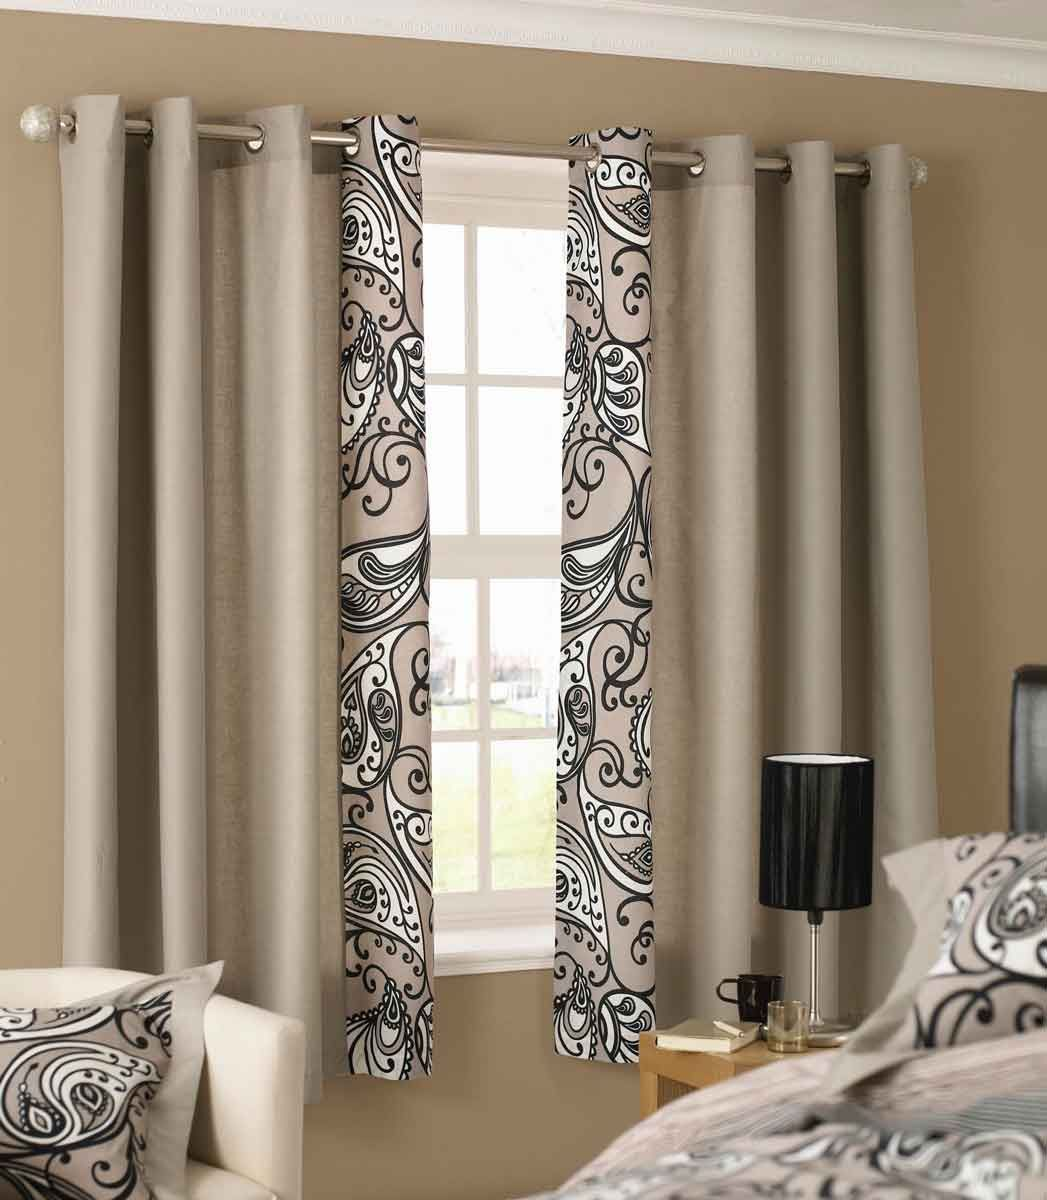 Modern designer curtains - Dress Your Windows In Classy And Timeless Curtains